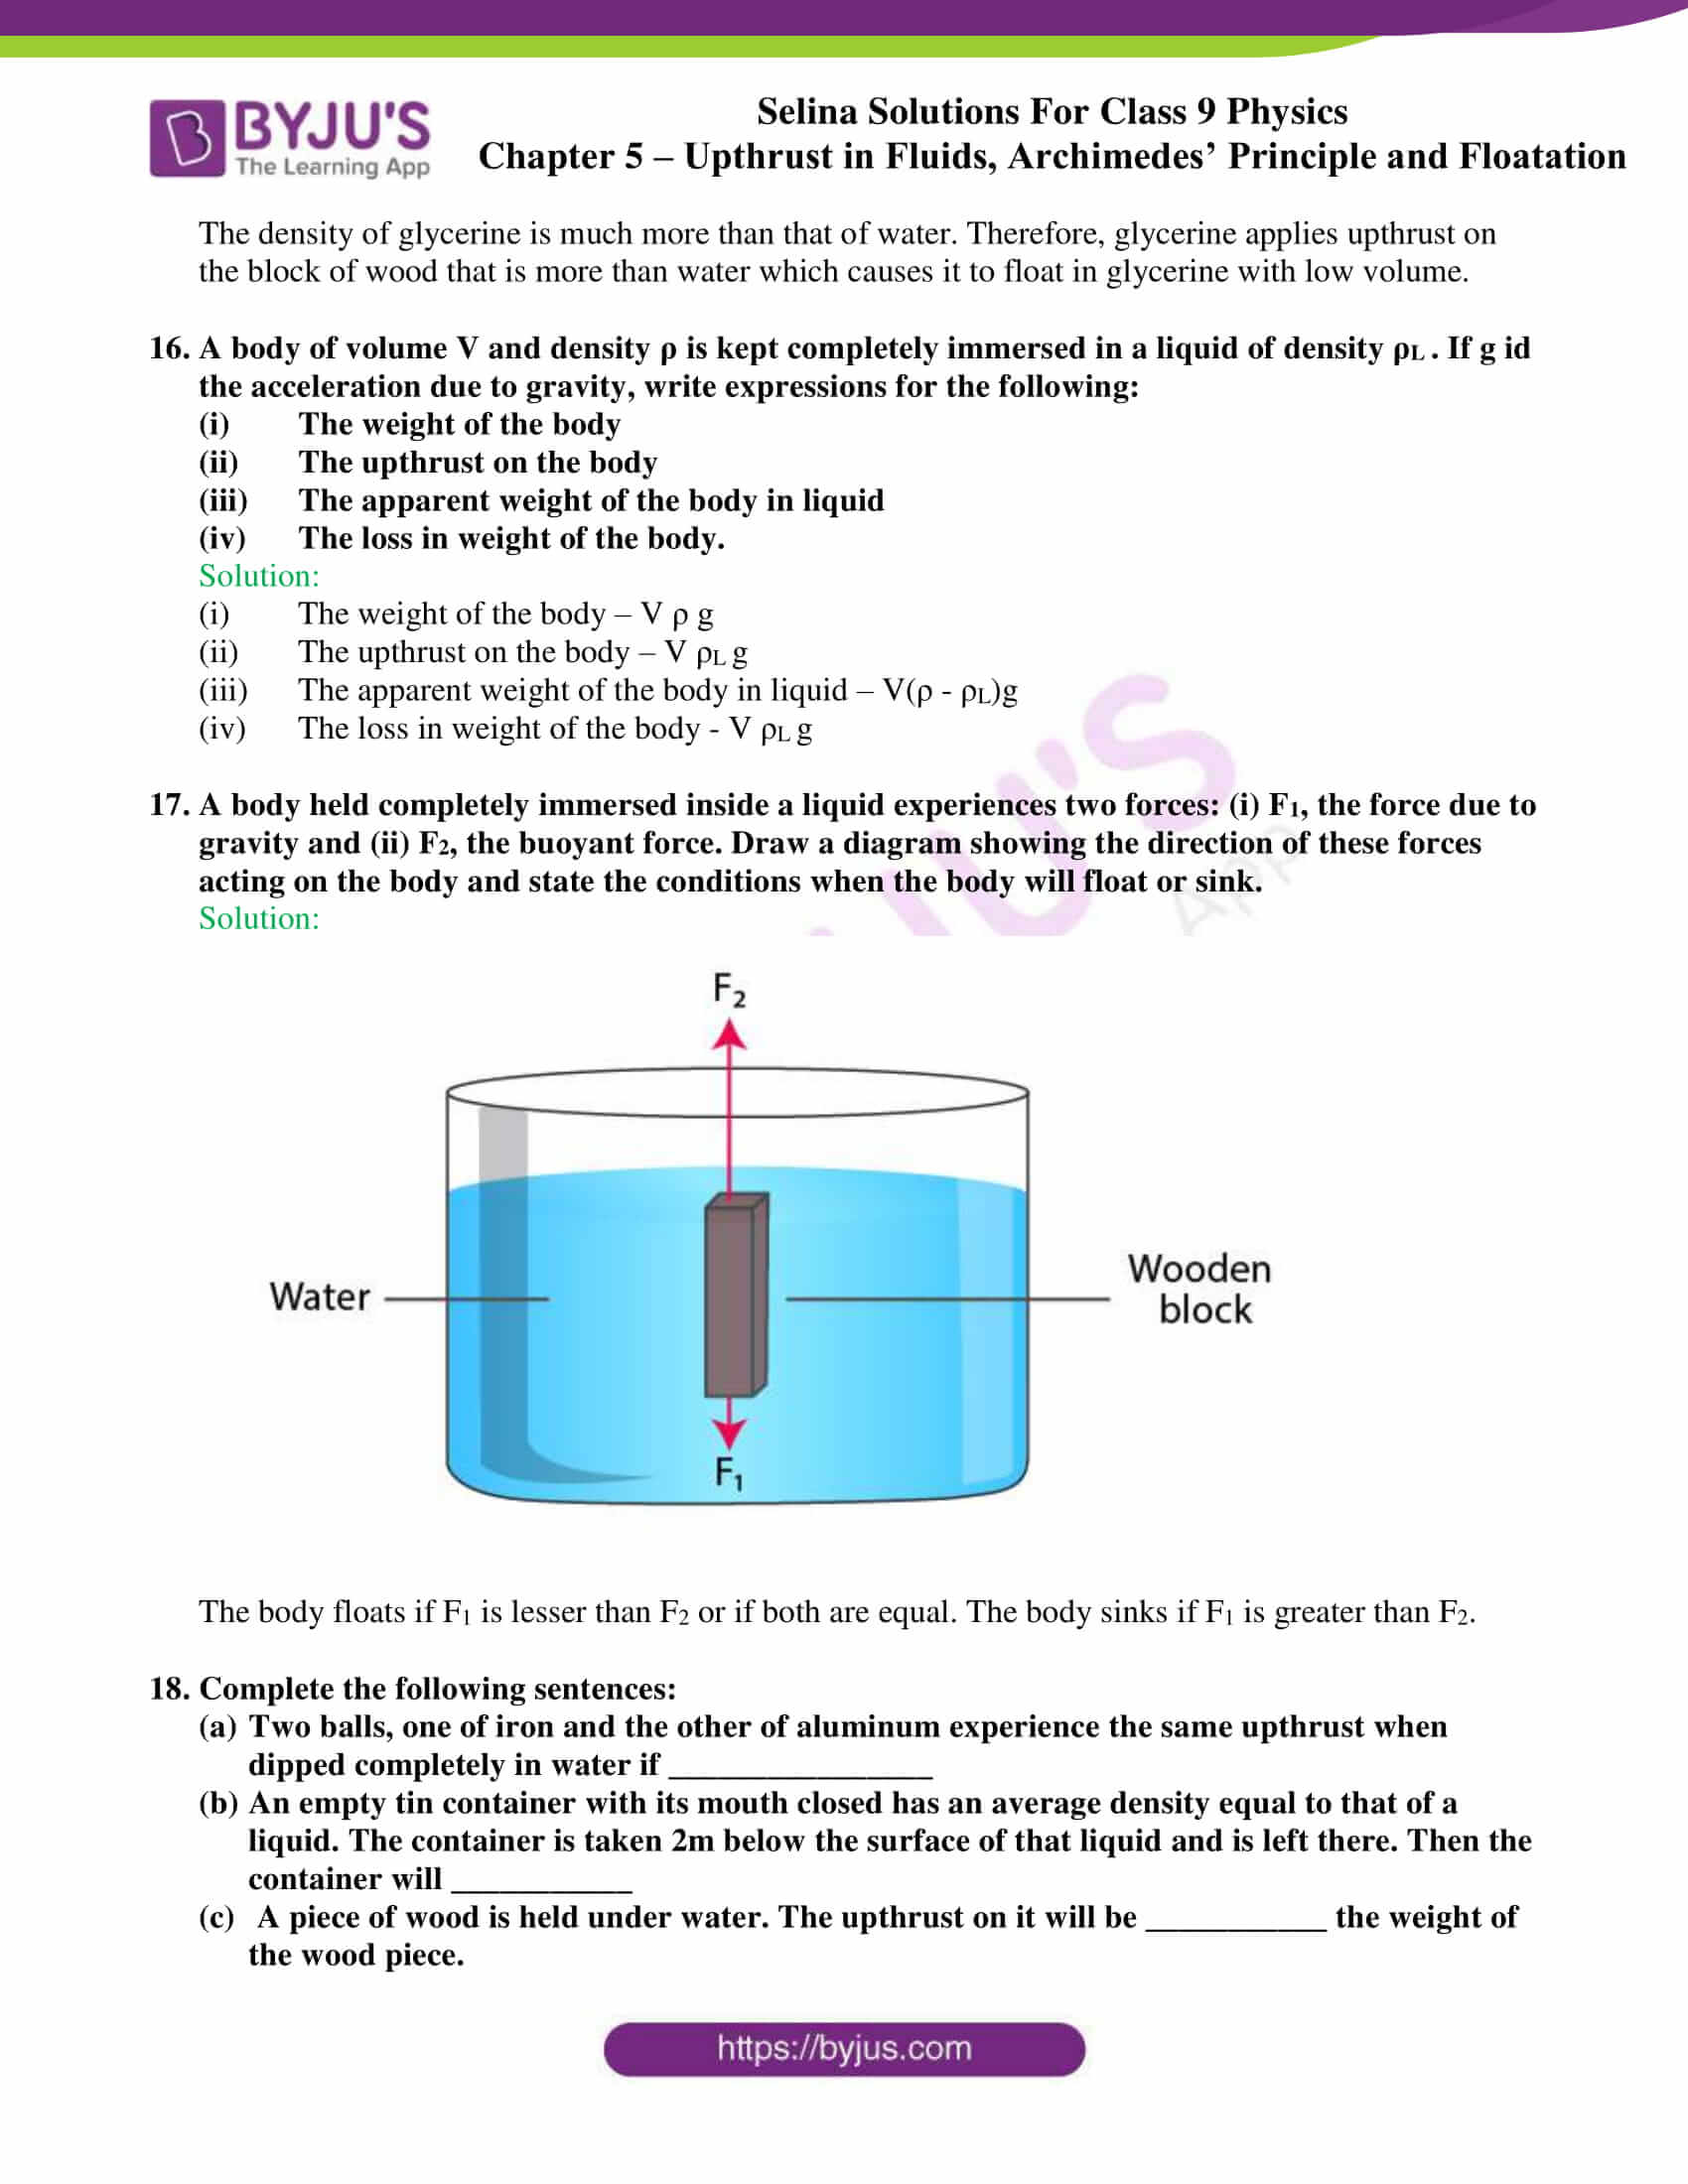 selina solutions class 9 physics chapter 5 part 04